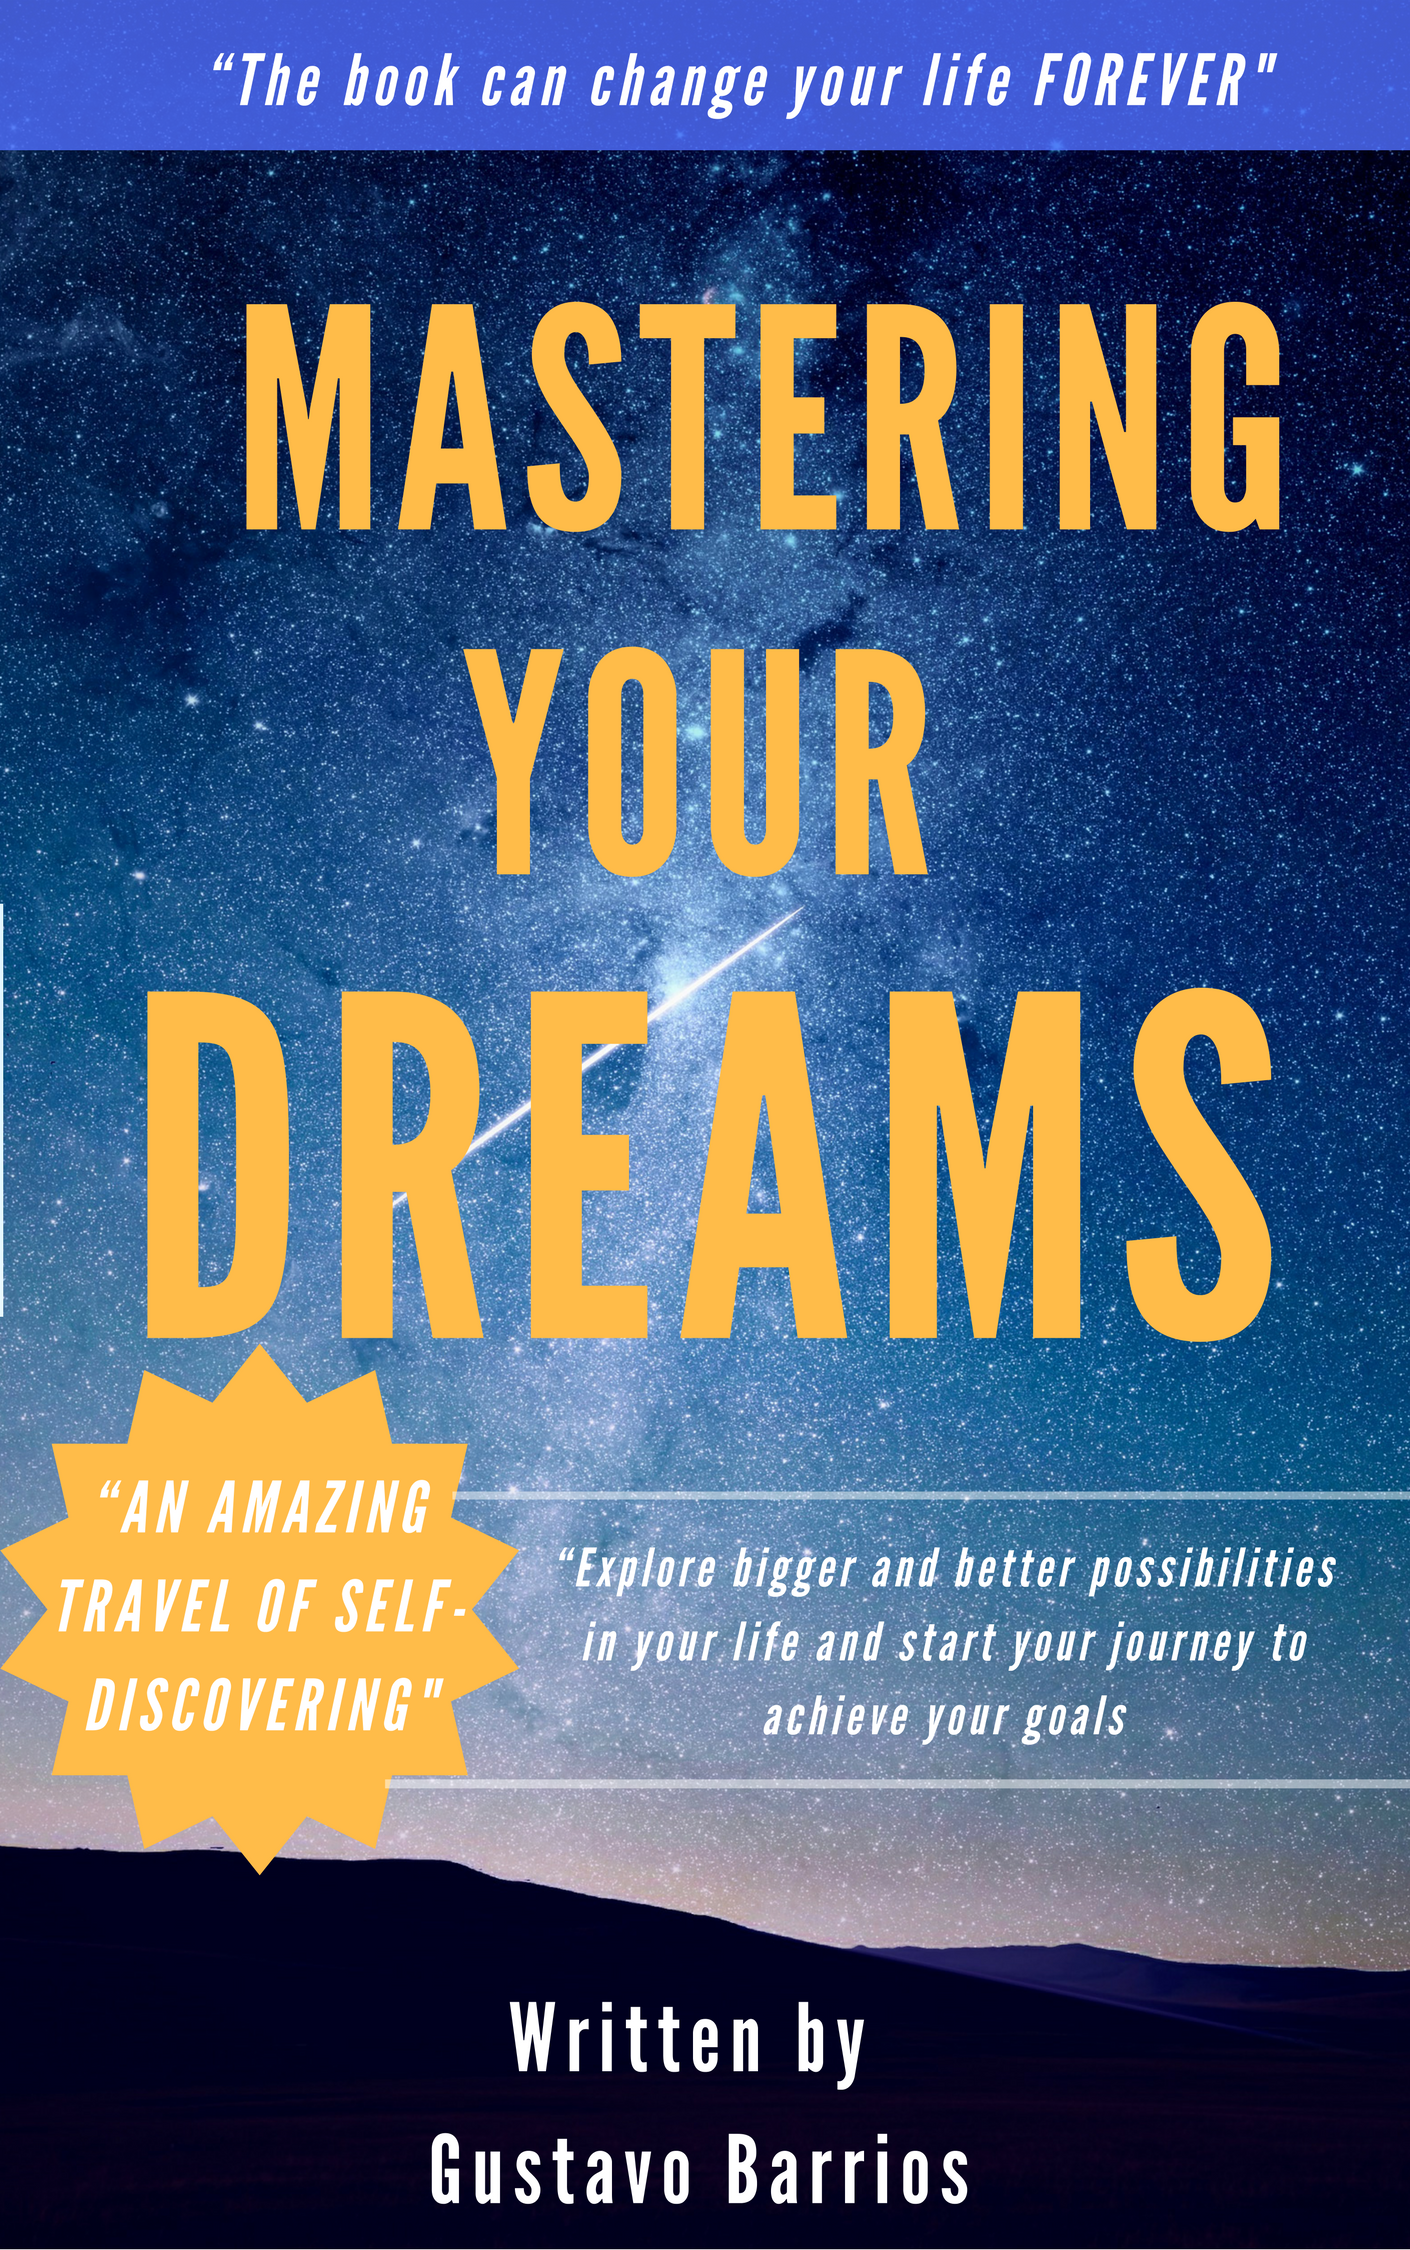 Gustavo Barrios Lagunes  Mastering your Dreams